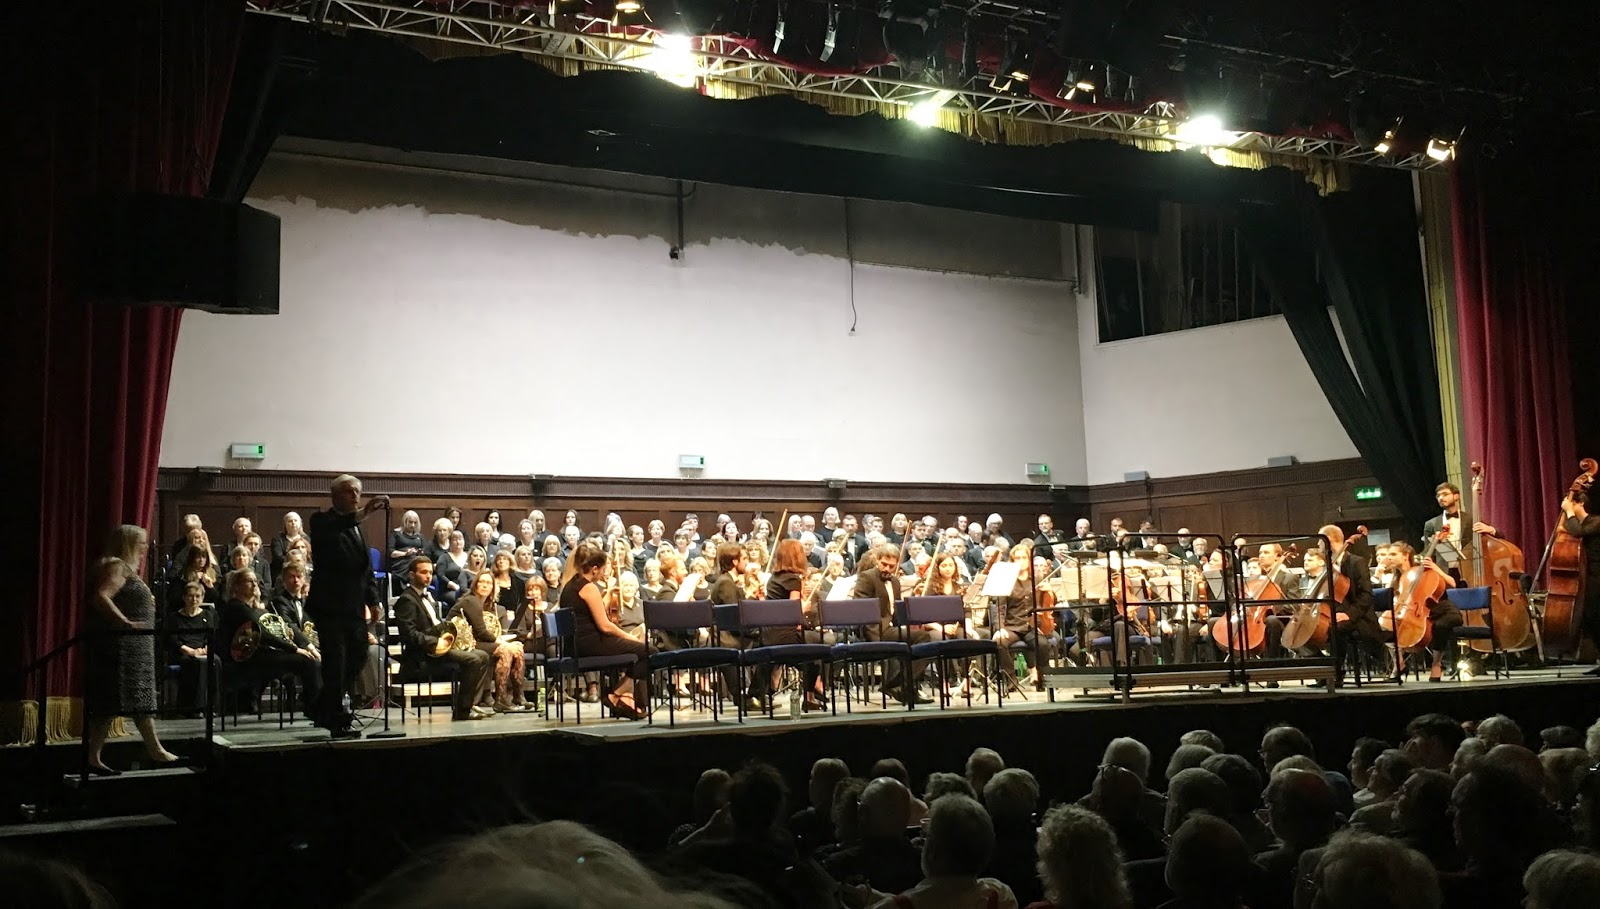 Verdi Requiem at  the White Rock – Hastings Battleaxe enjoys a great performance